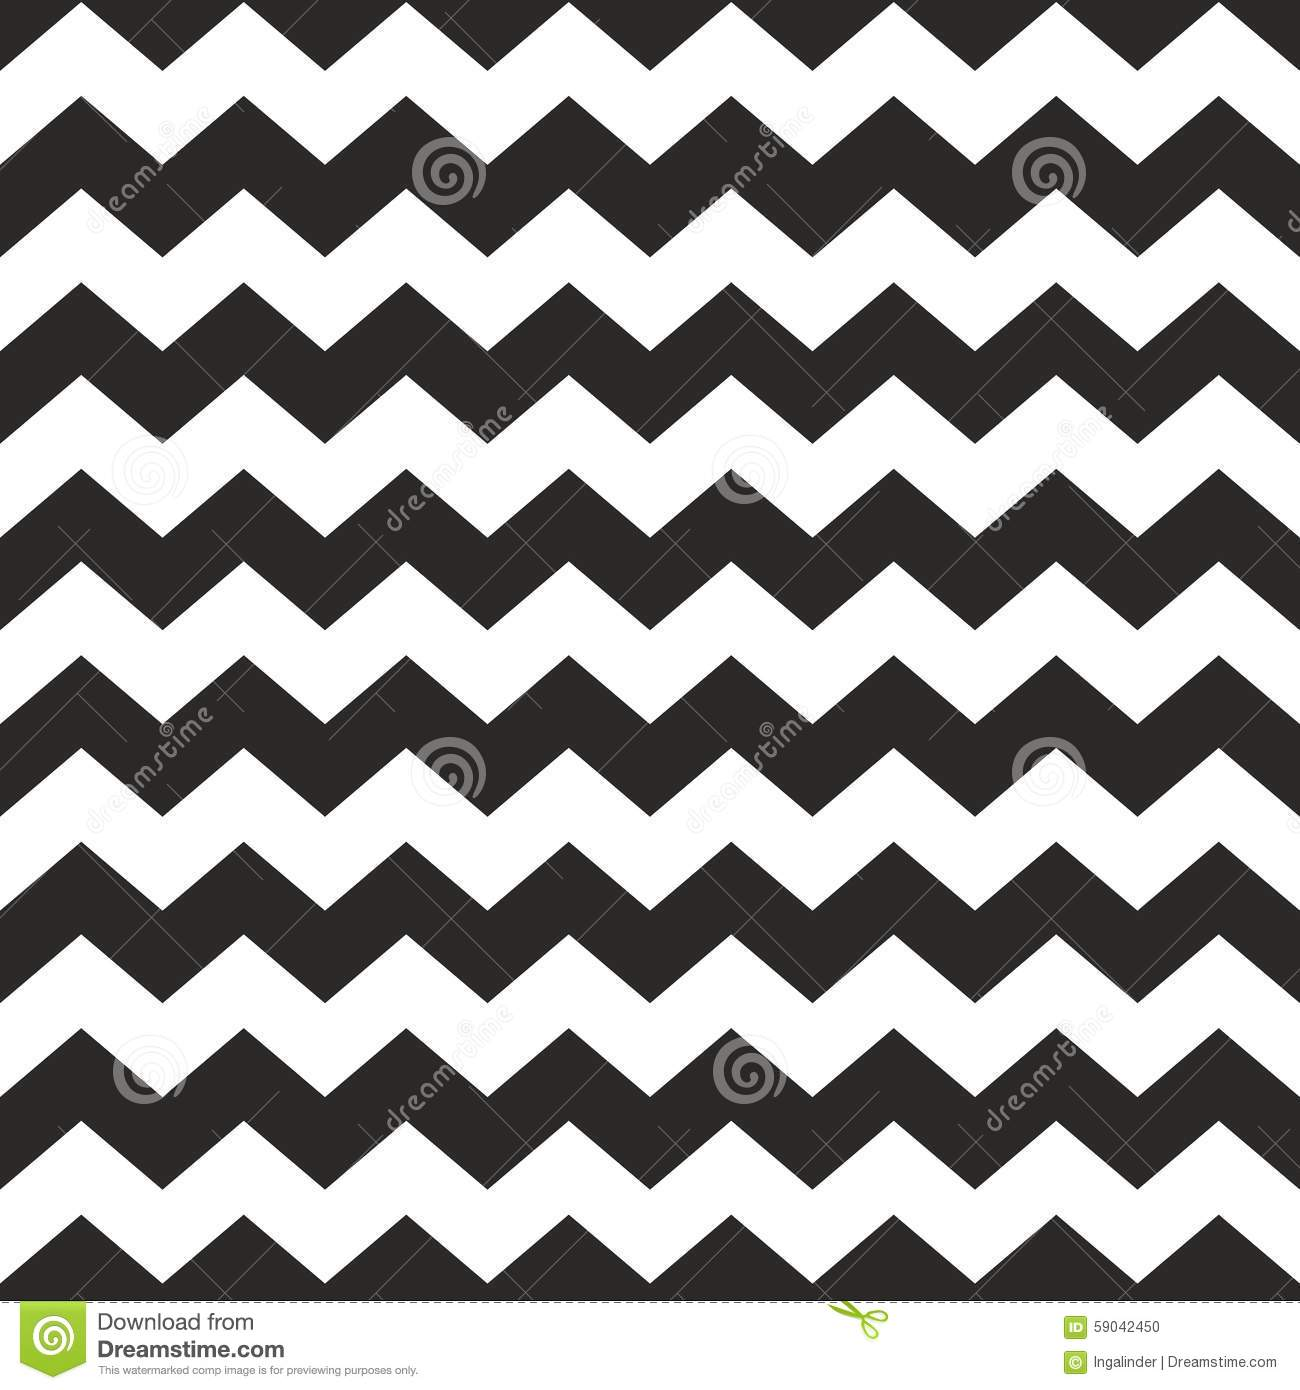 Zig Zag Vector Chevron Black And White Tile Pattern Stock Vector ...